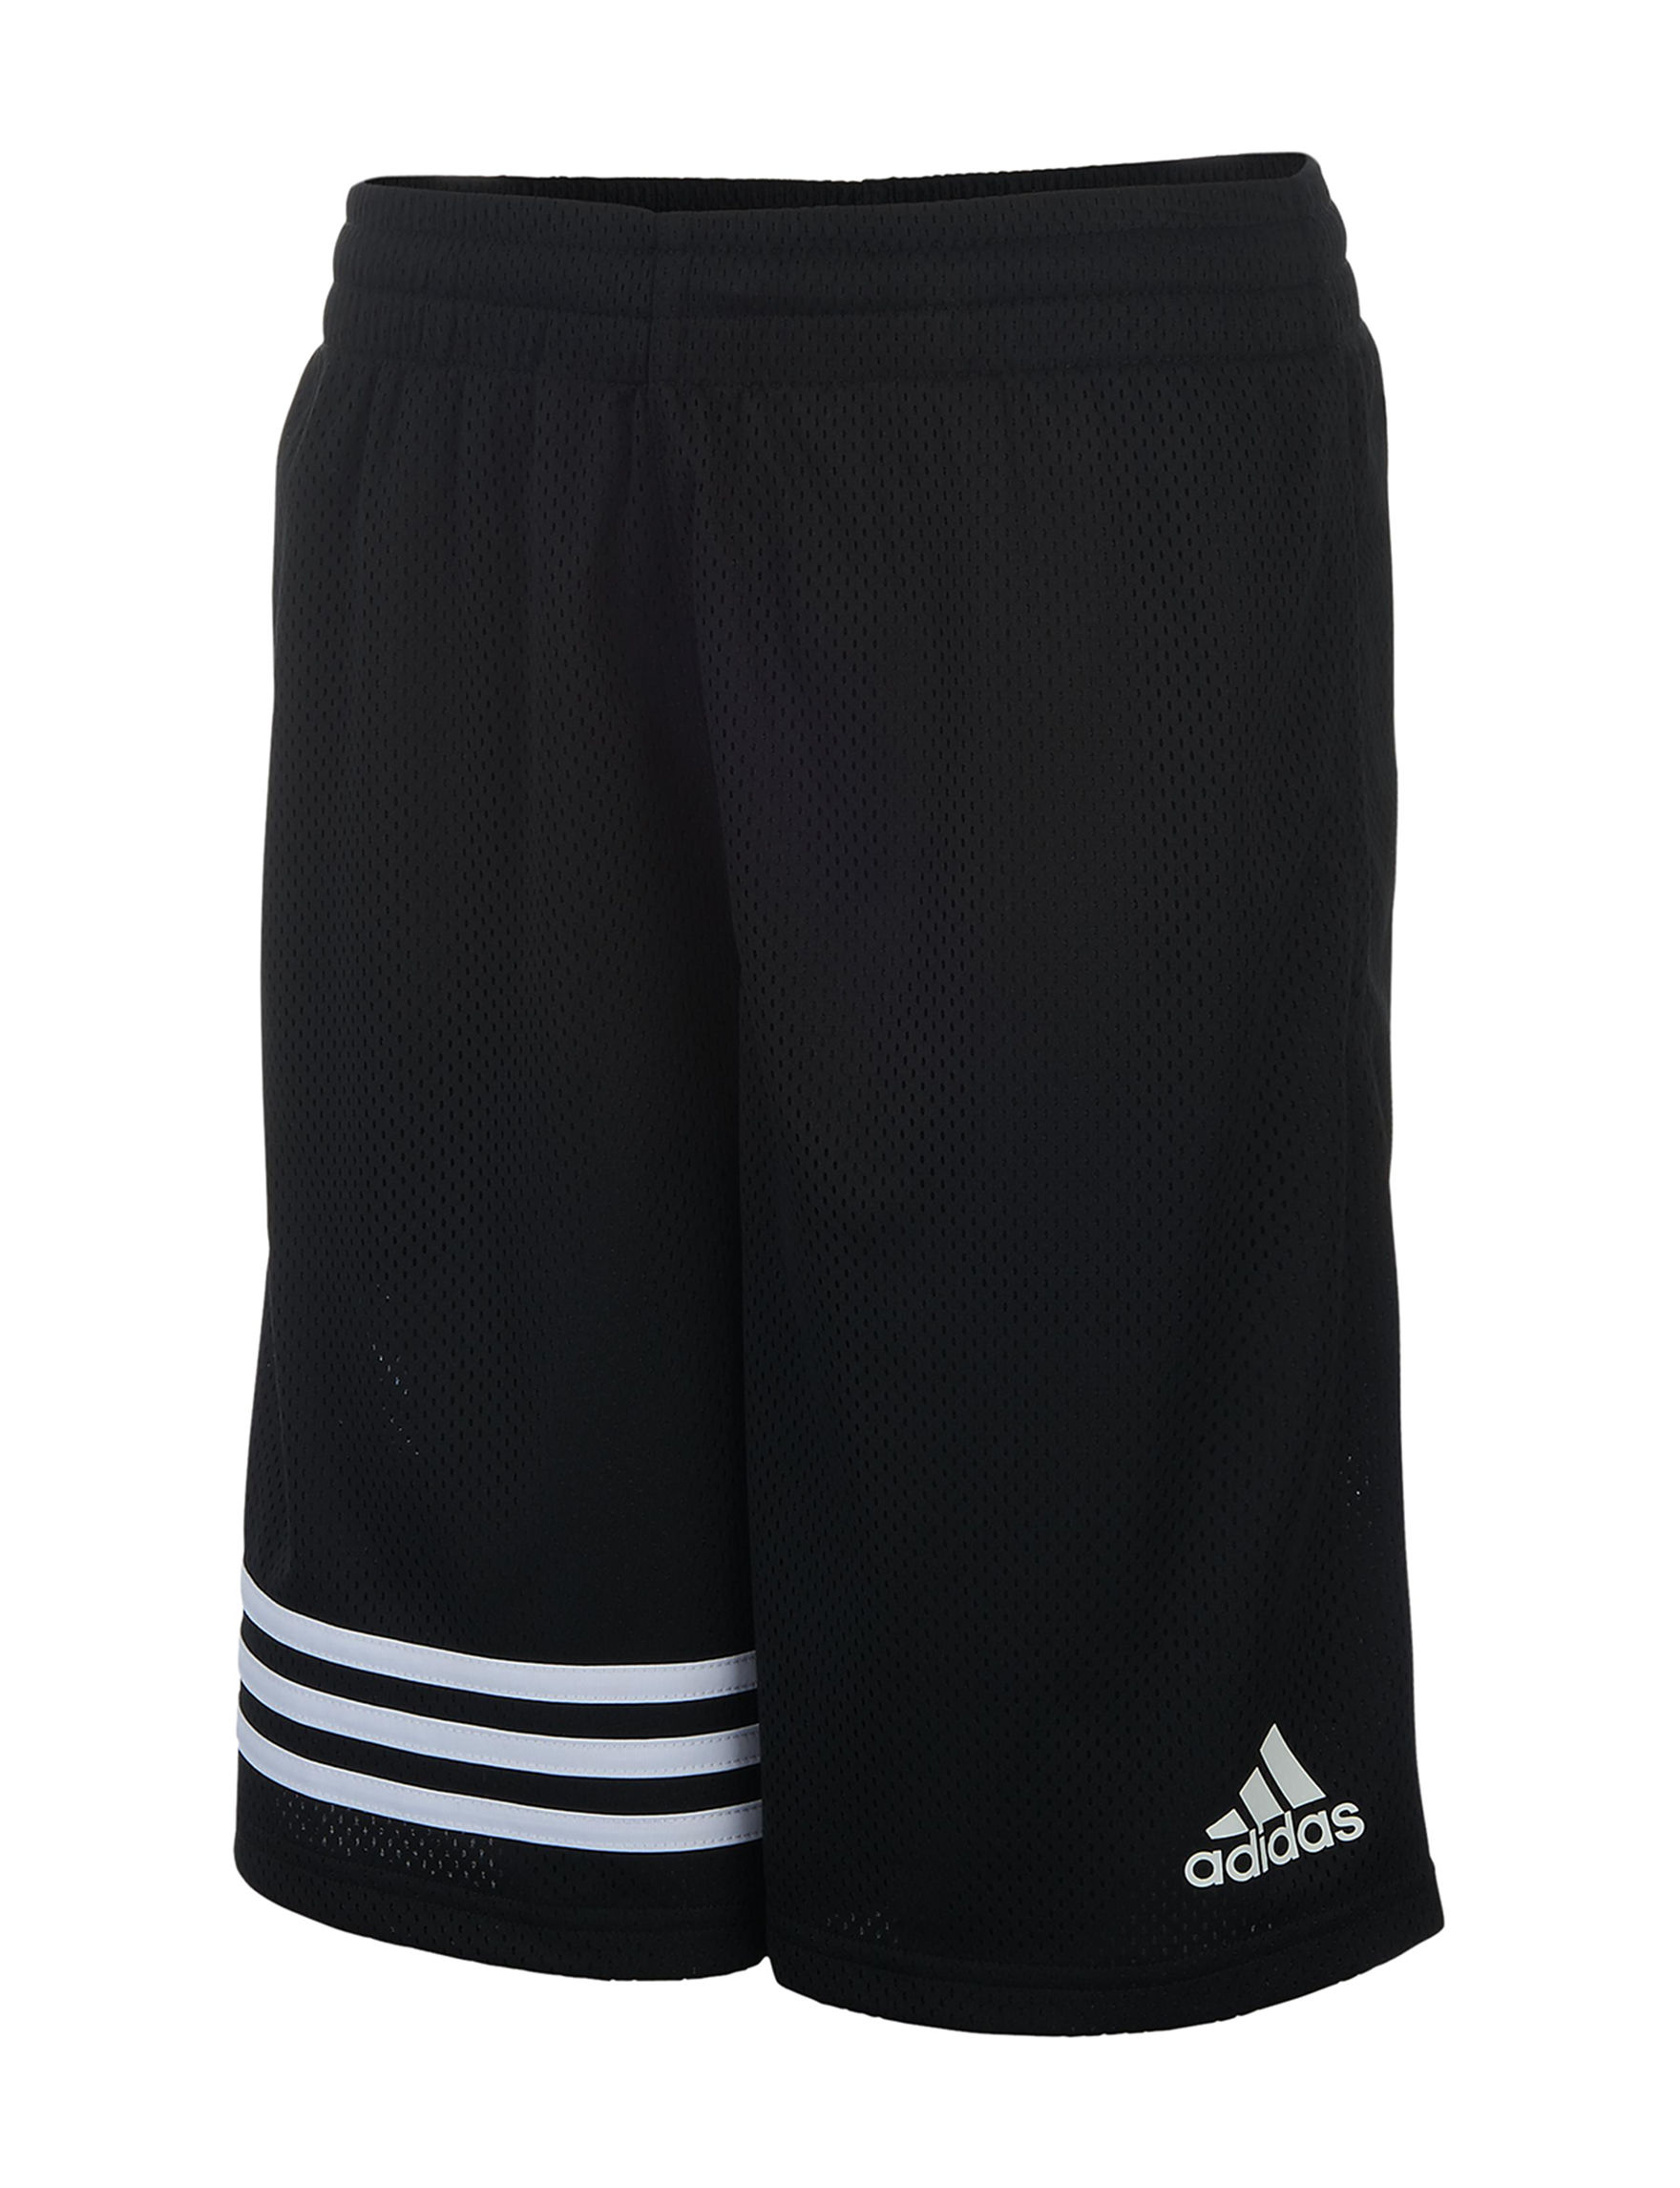 Adidas Black Relaxed